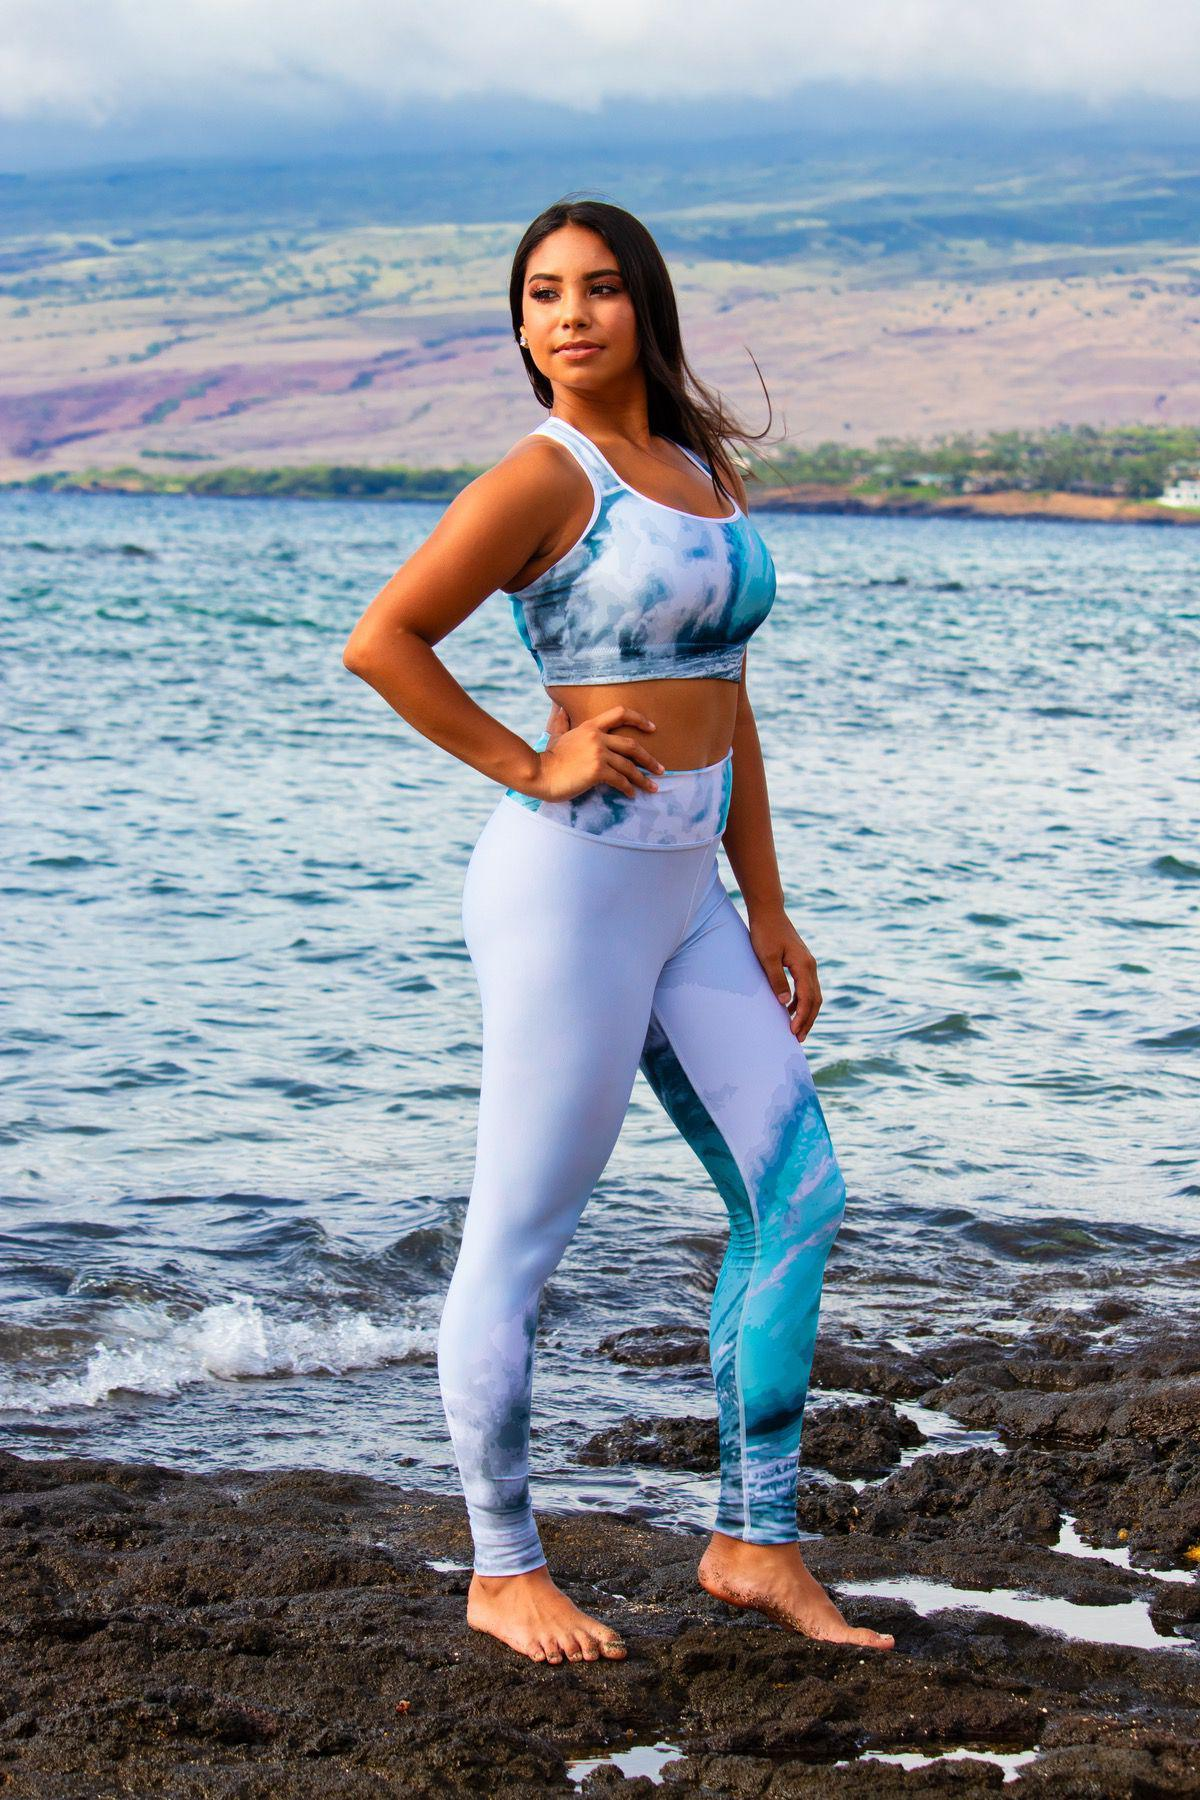 Miss Kilauea Teen Hawai'i USA wearing the Big Wave Yoga Set